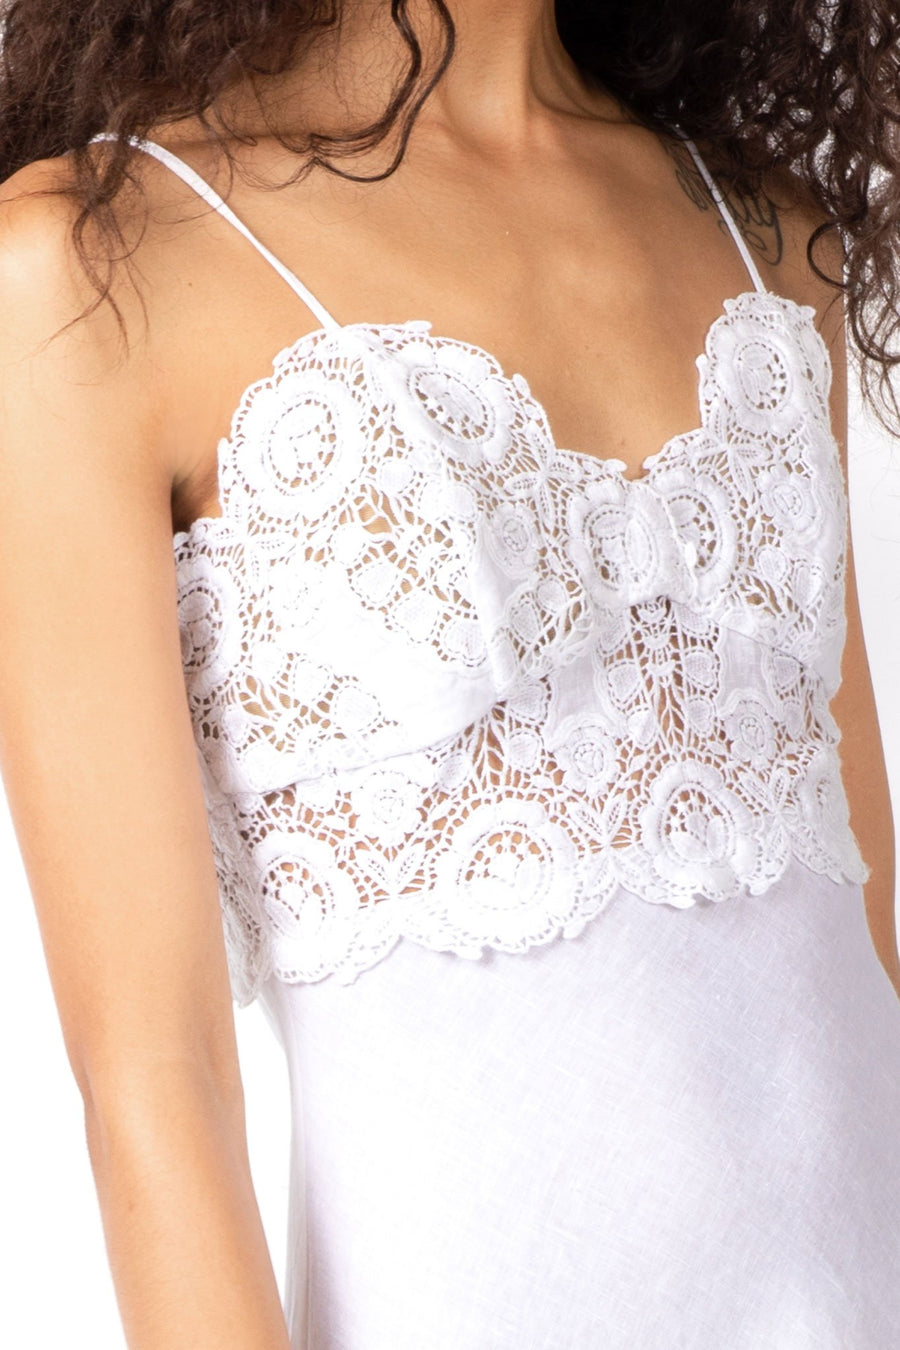 This is a detail photo of the lace bodice on the dress.